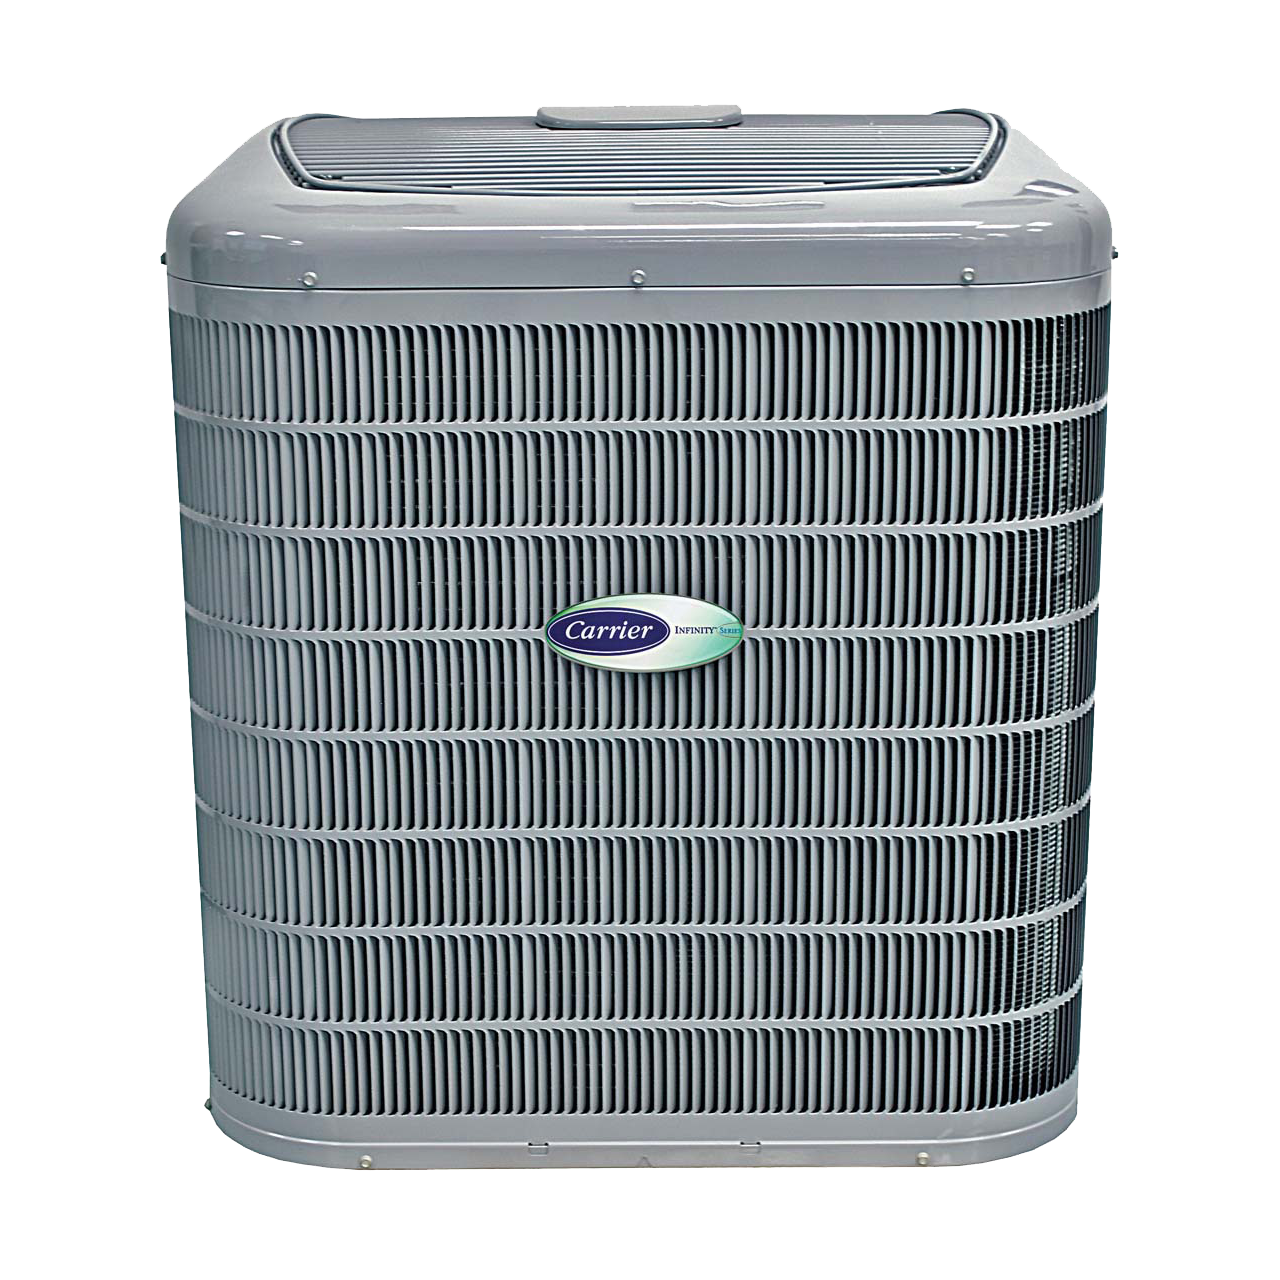 Infinity 17 Central Air Conditioner System